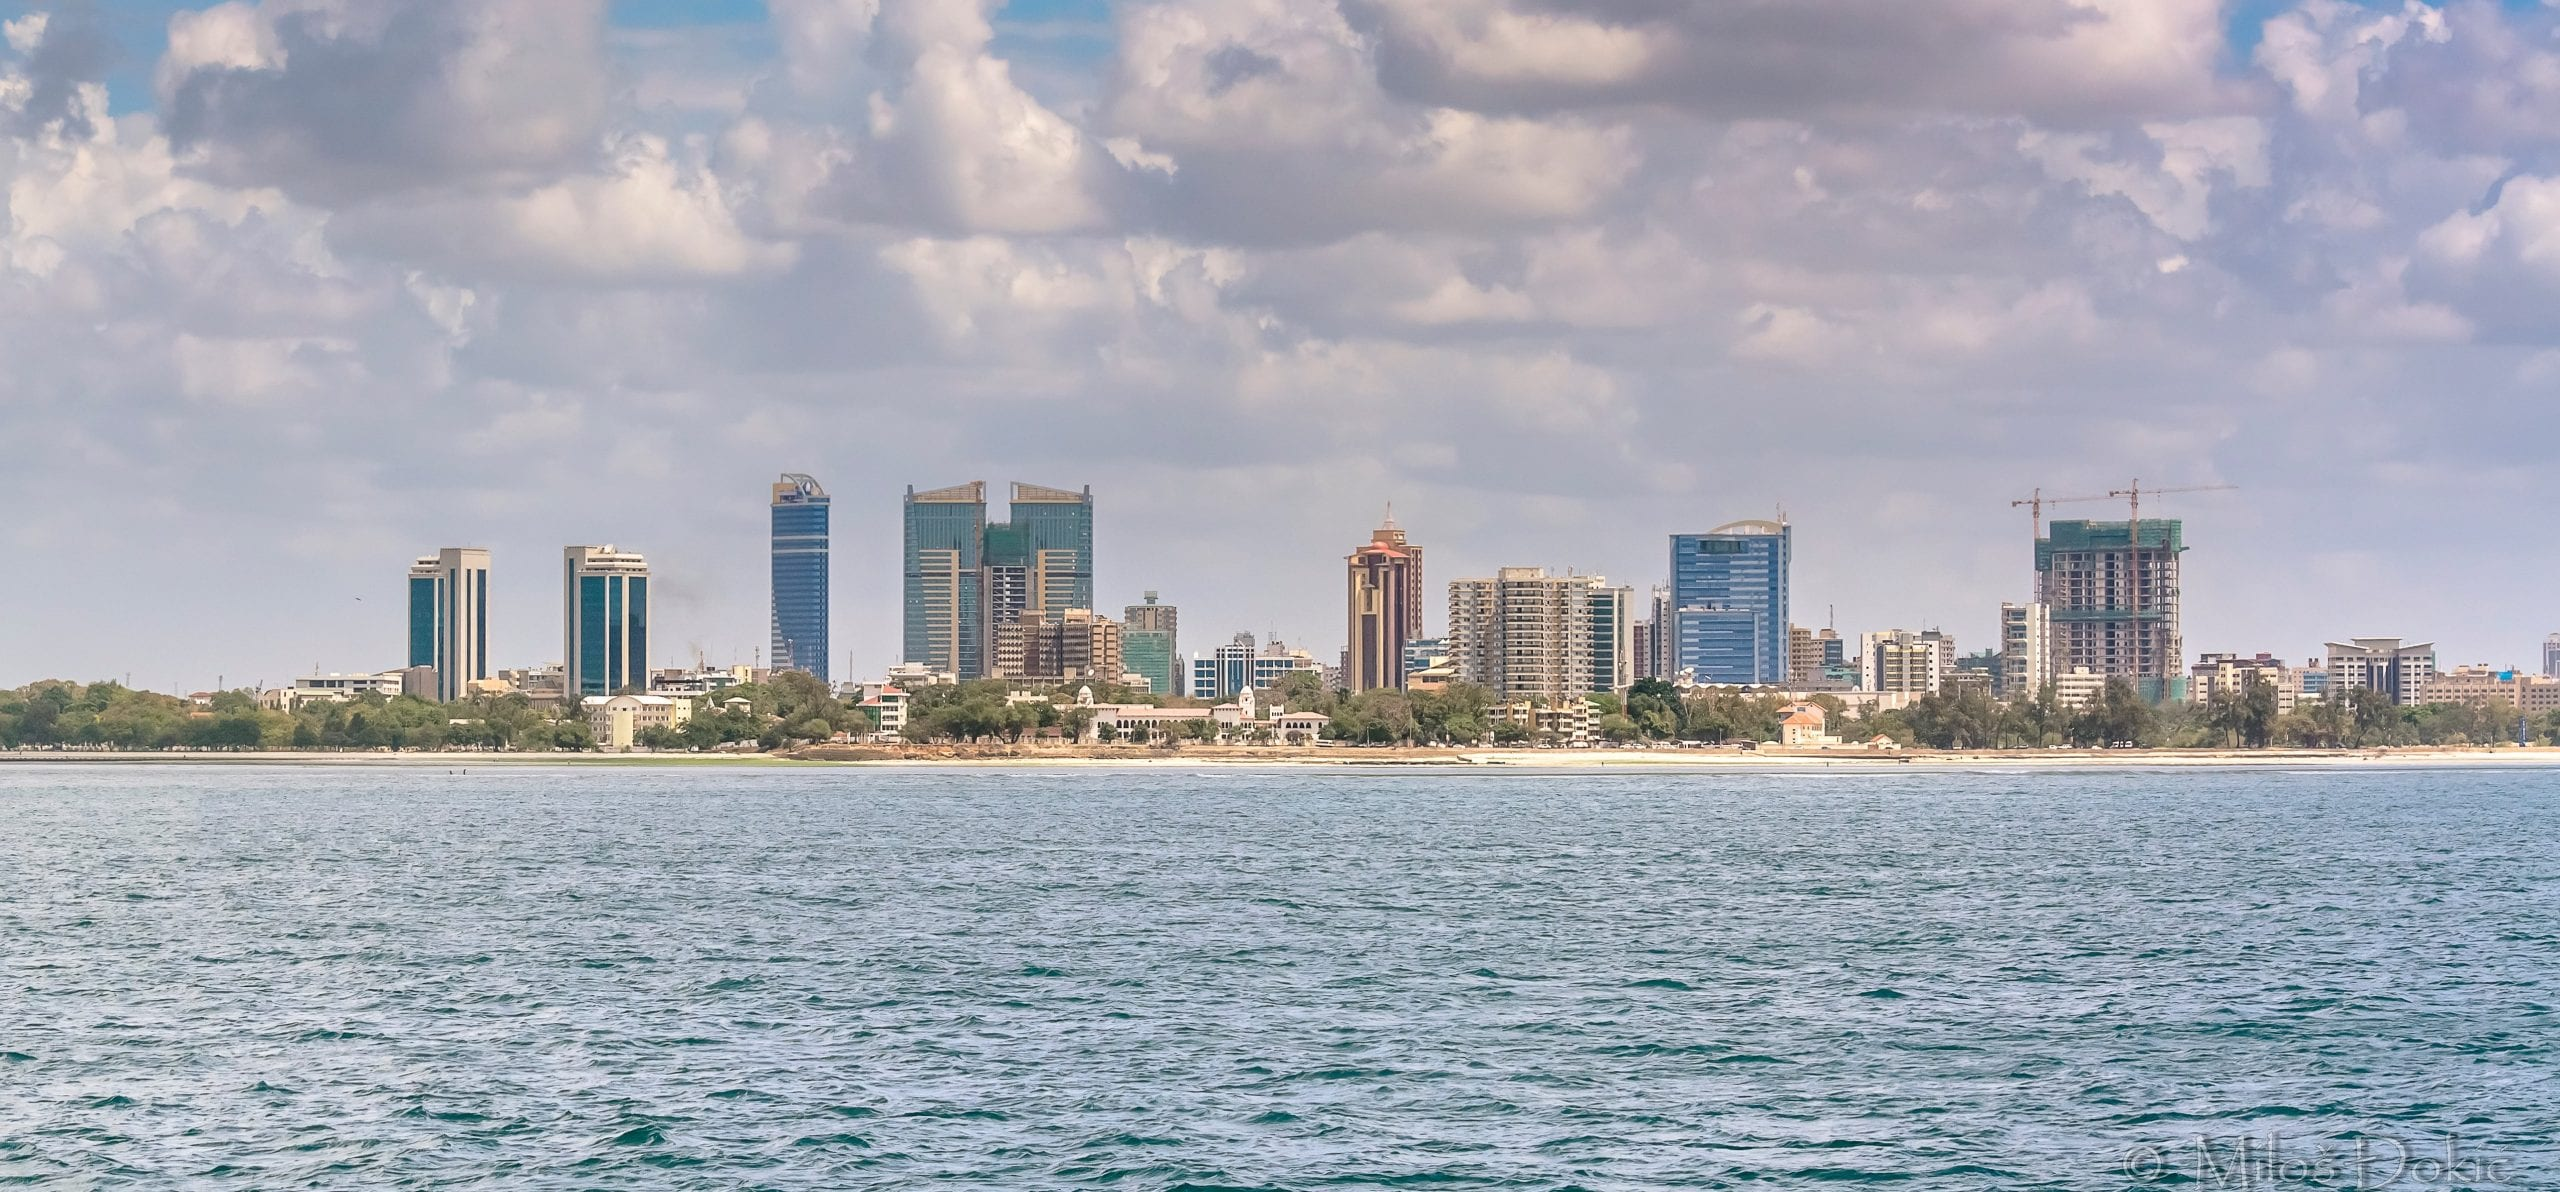 Dar Es Salaam Most Beautiful cities in Tanzania